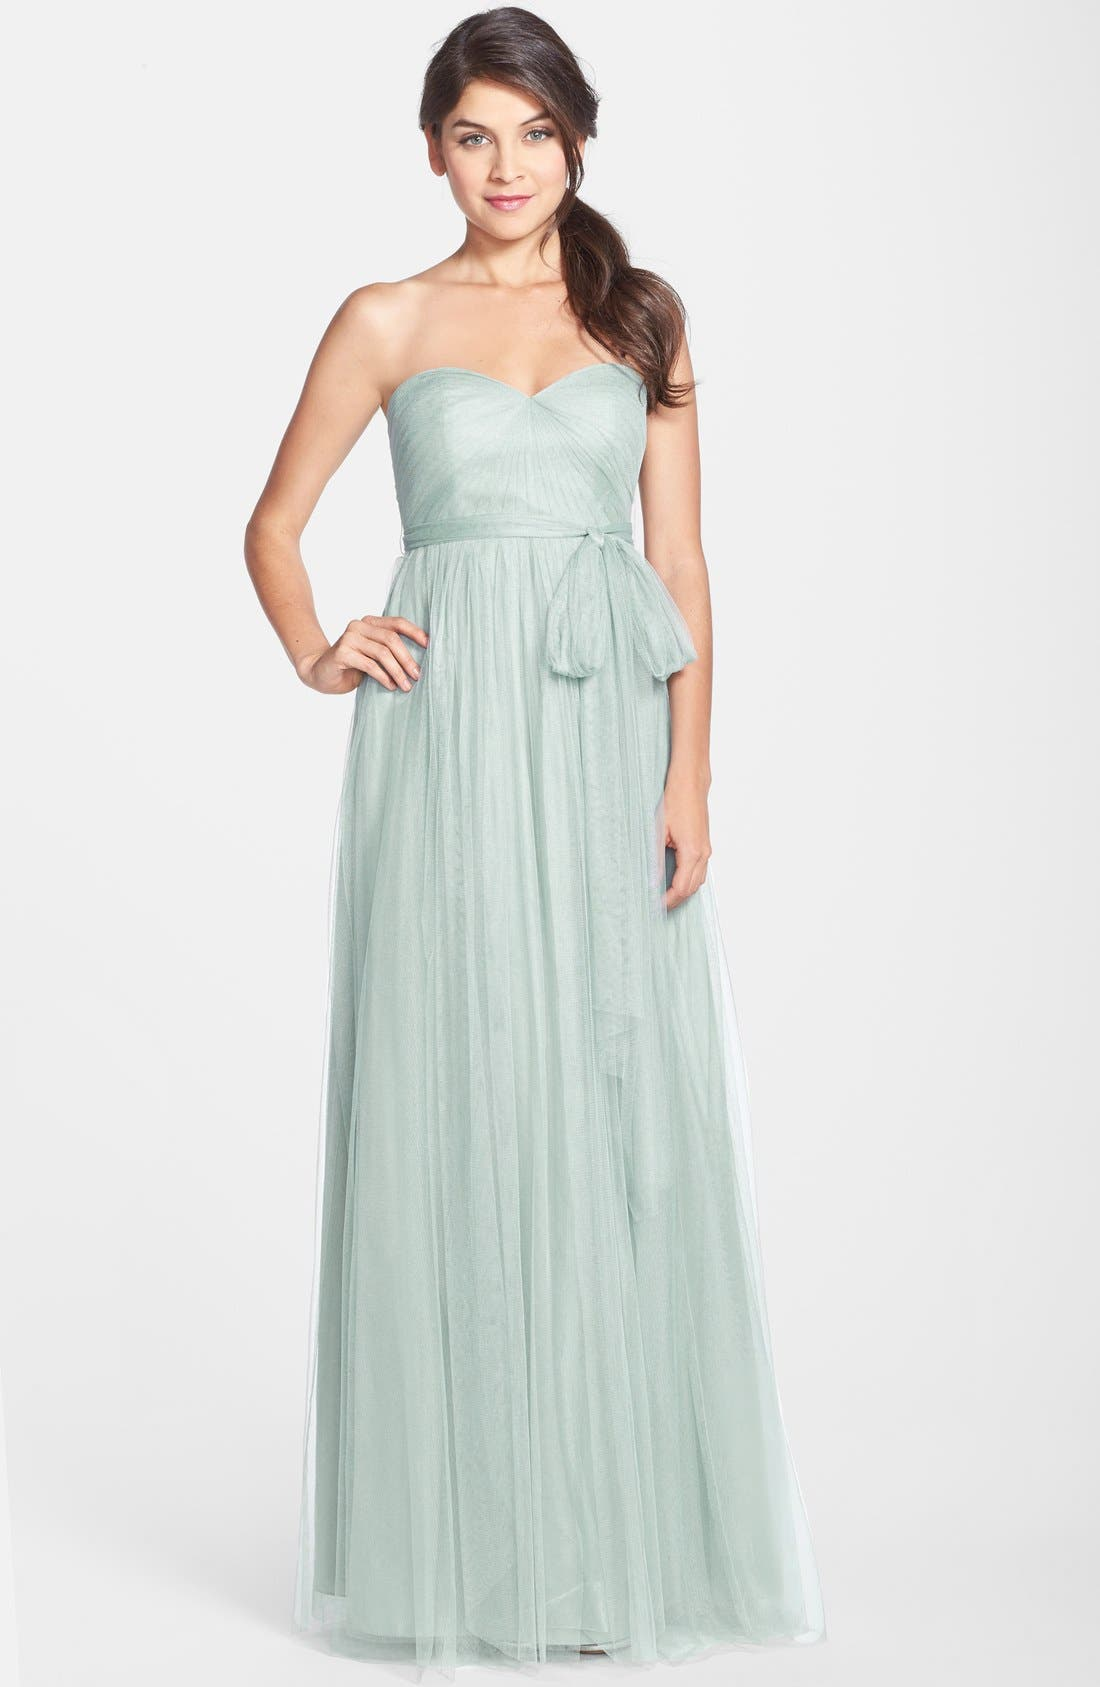 Annabelle Convertible Tulle Column Dress,                             Main thumbnail 25, color,